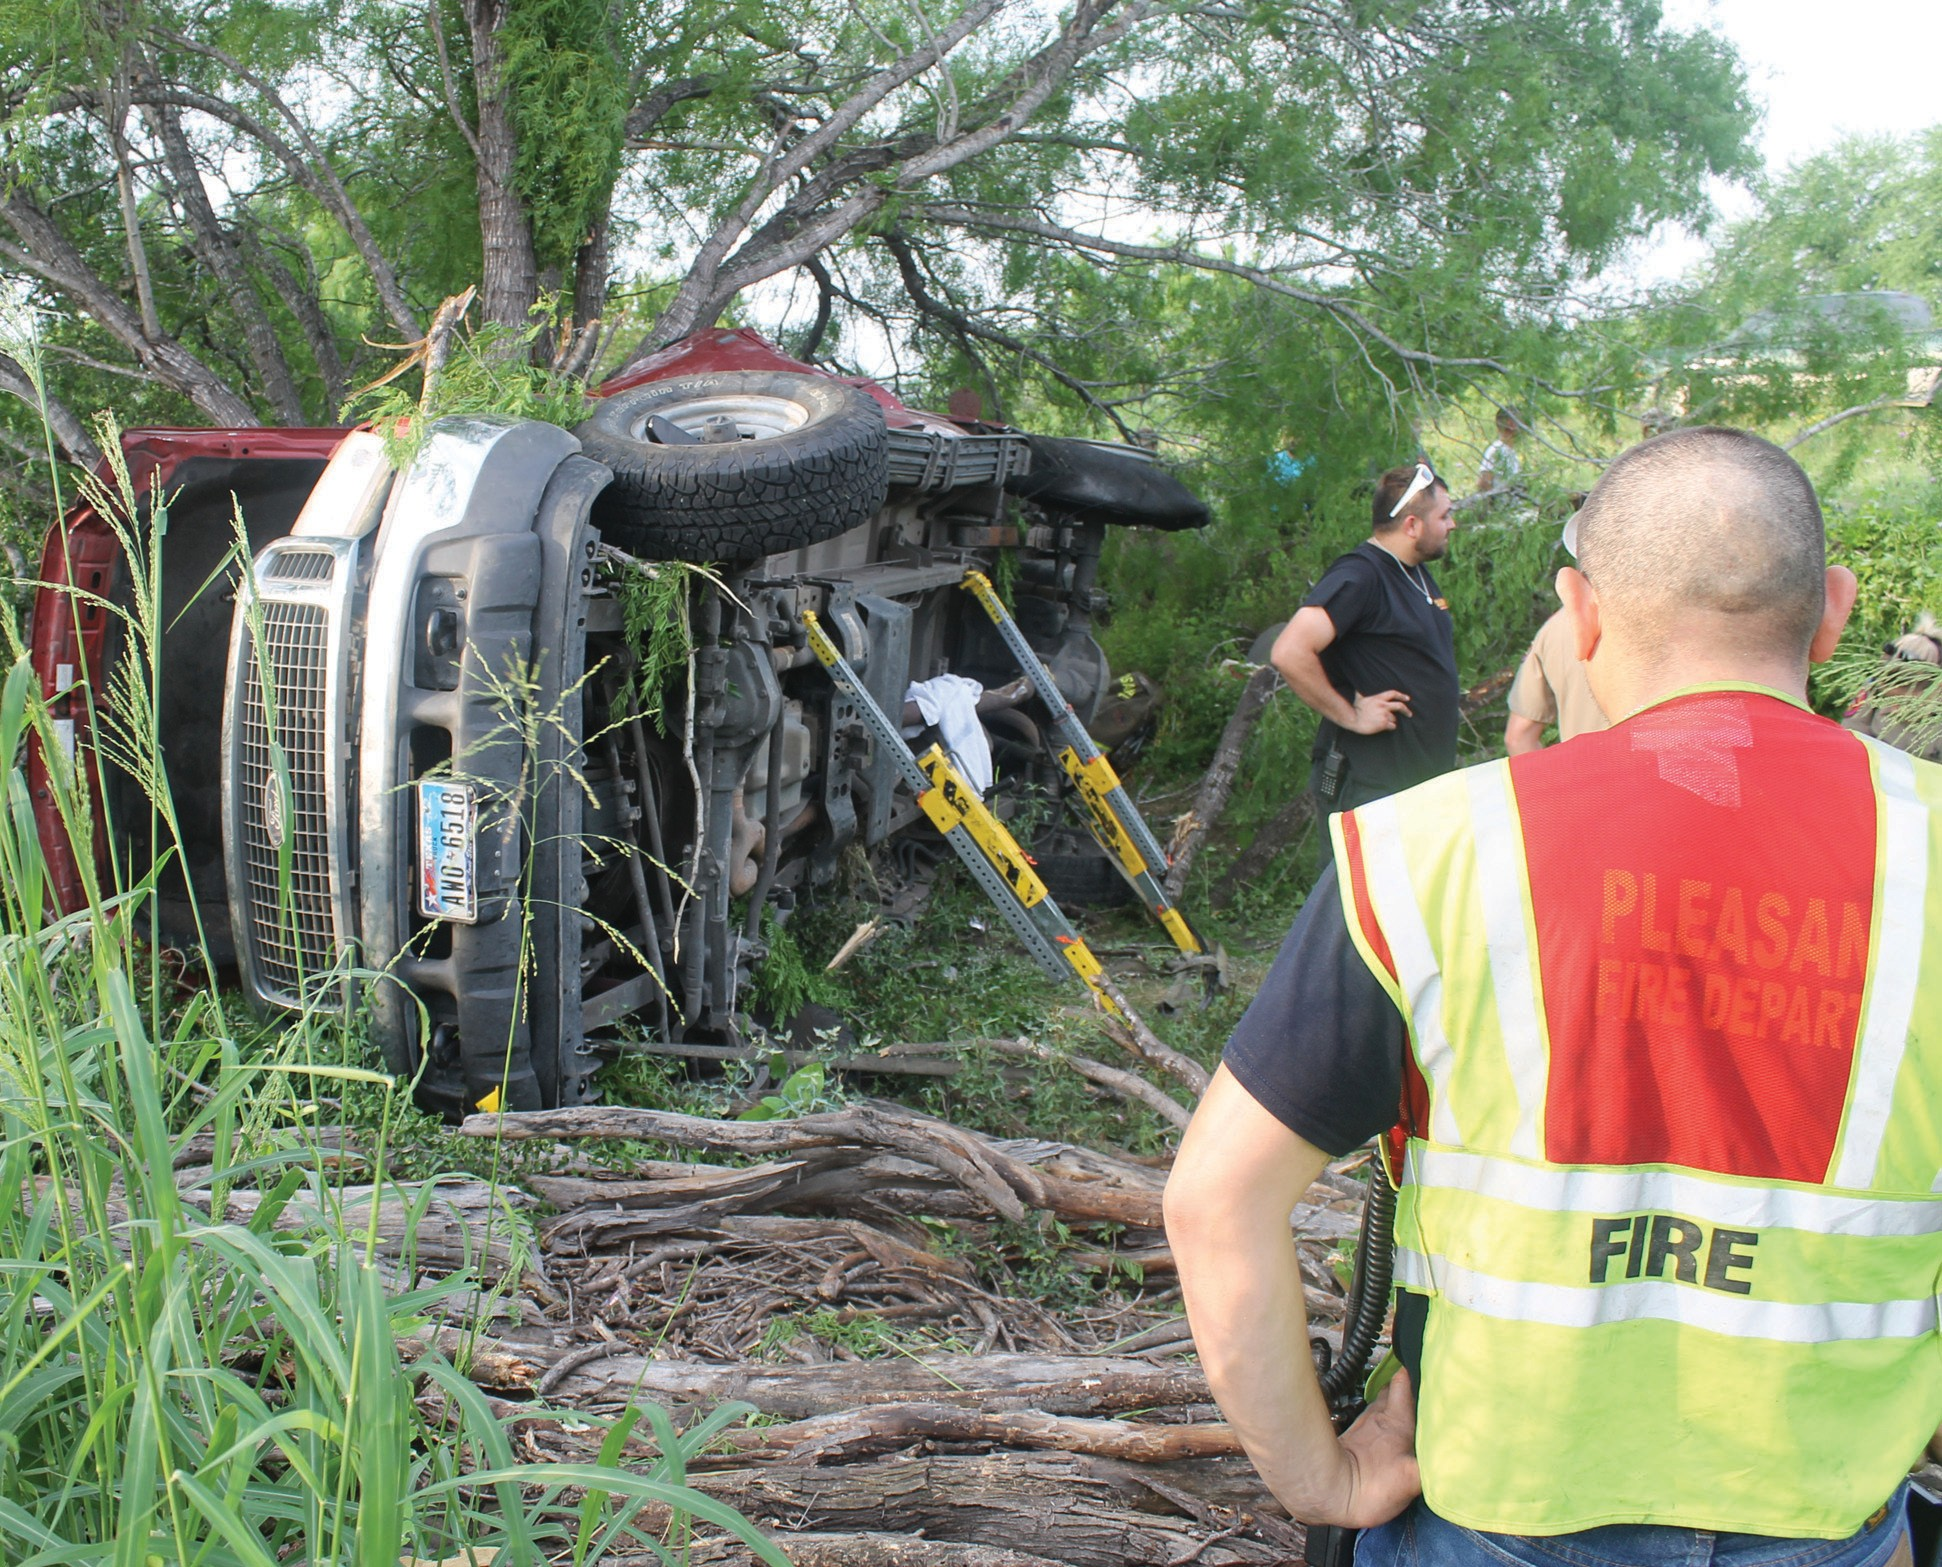 An accident on Sunday, April 26 involving a Ford Excursion resulted in a fatality. The accident occurred around 6:30 p.m. on IH-37, near mile marker 97. The Pleasanton Volunteer Fire Department and Campbellton Volunteer Fire Department assisted Texas DPS.